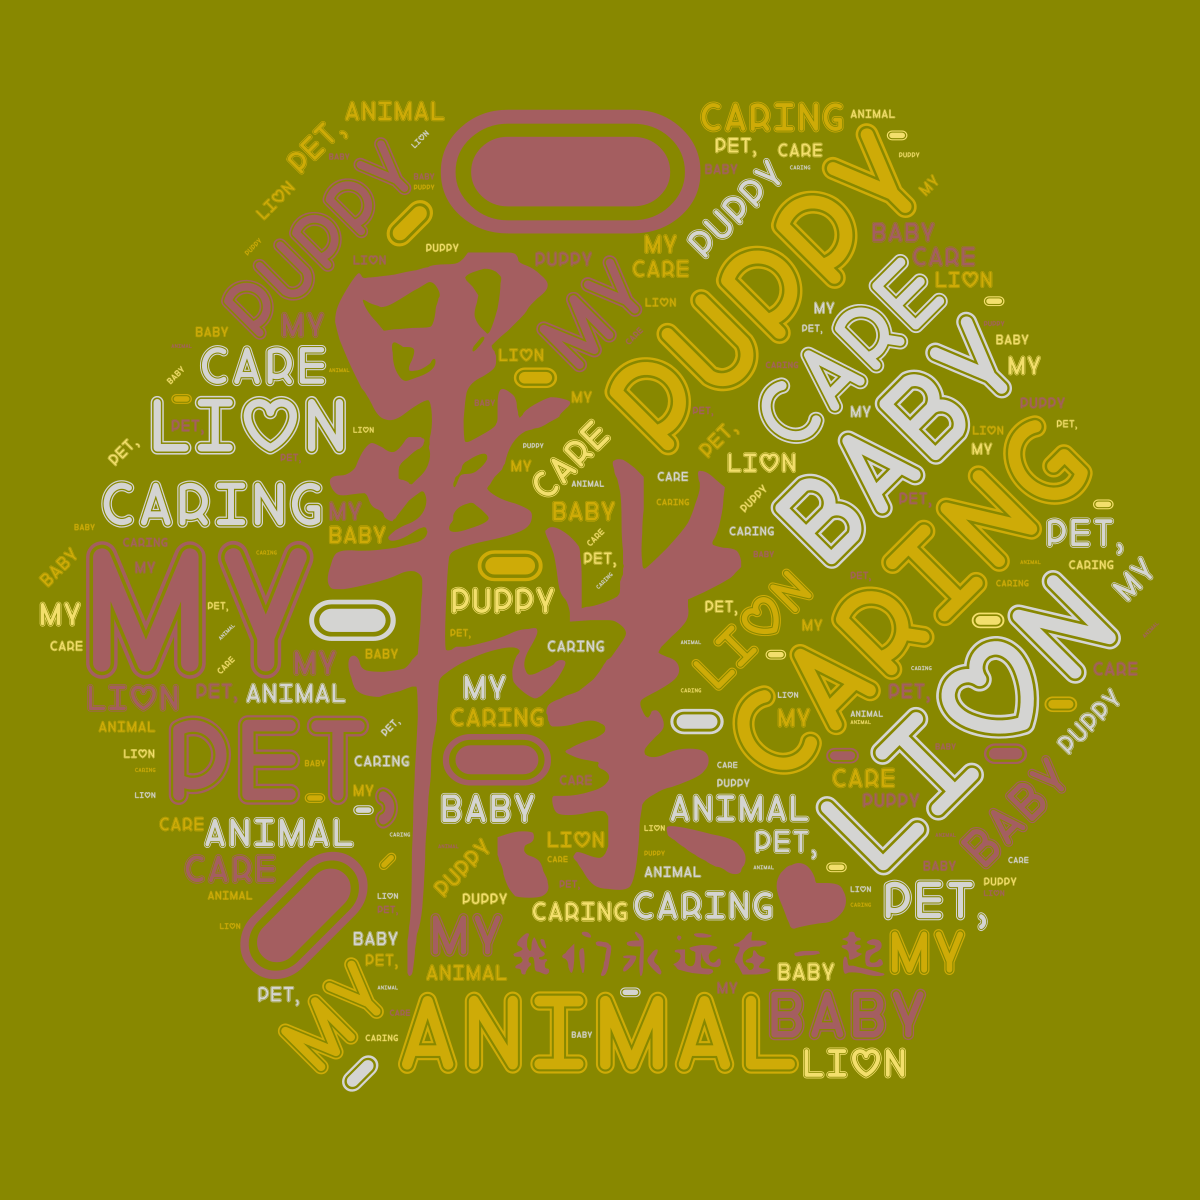 Caring Lion Puppy - My Baby Pet, Animal Care